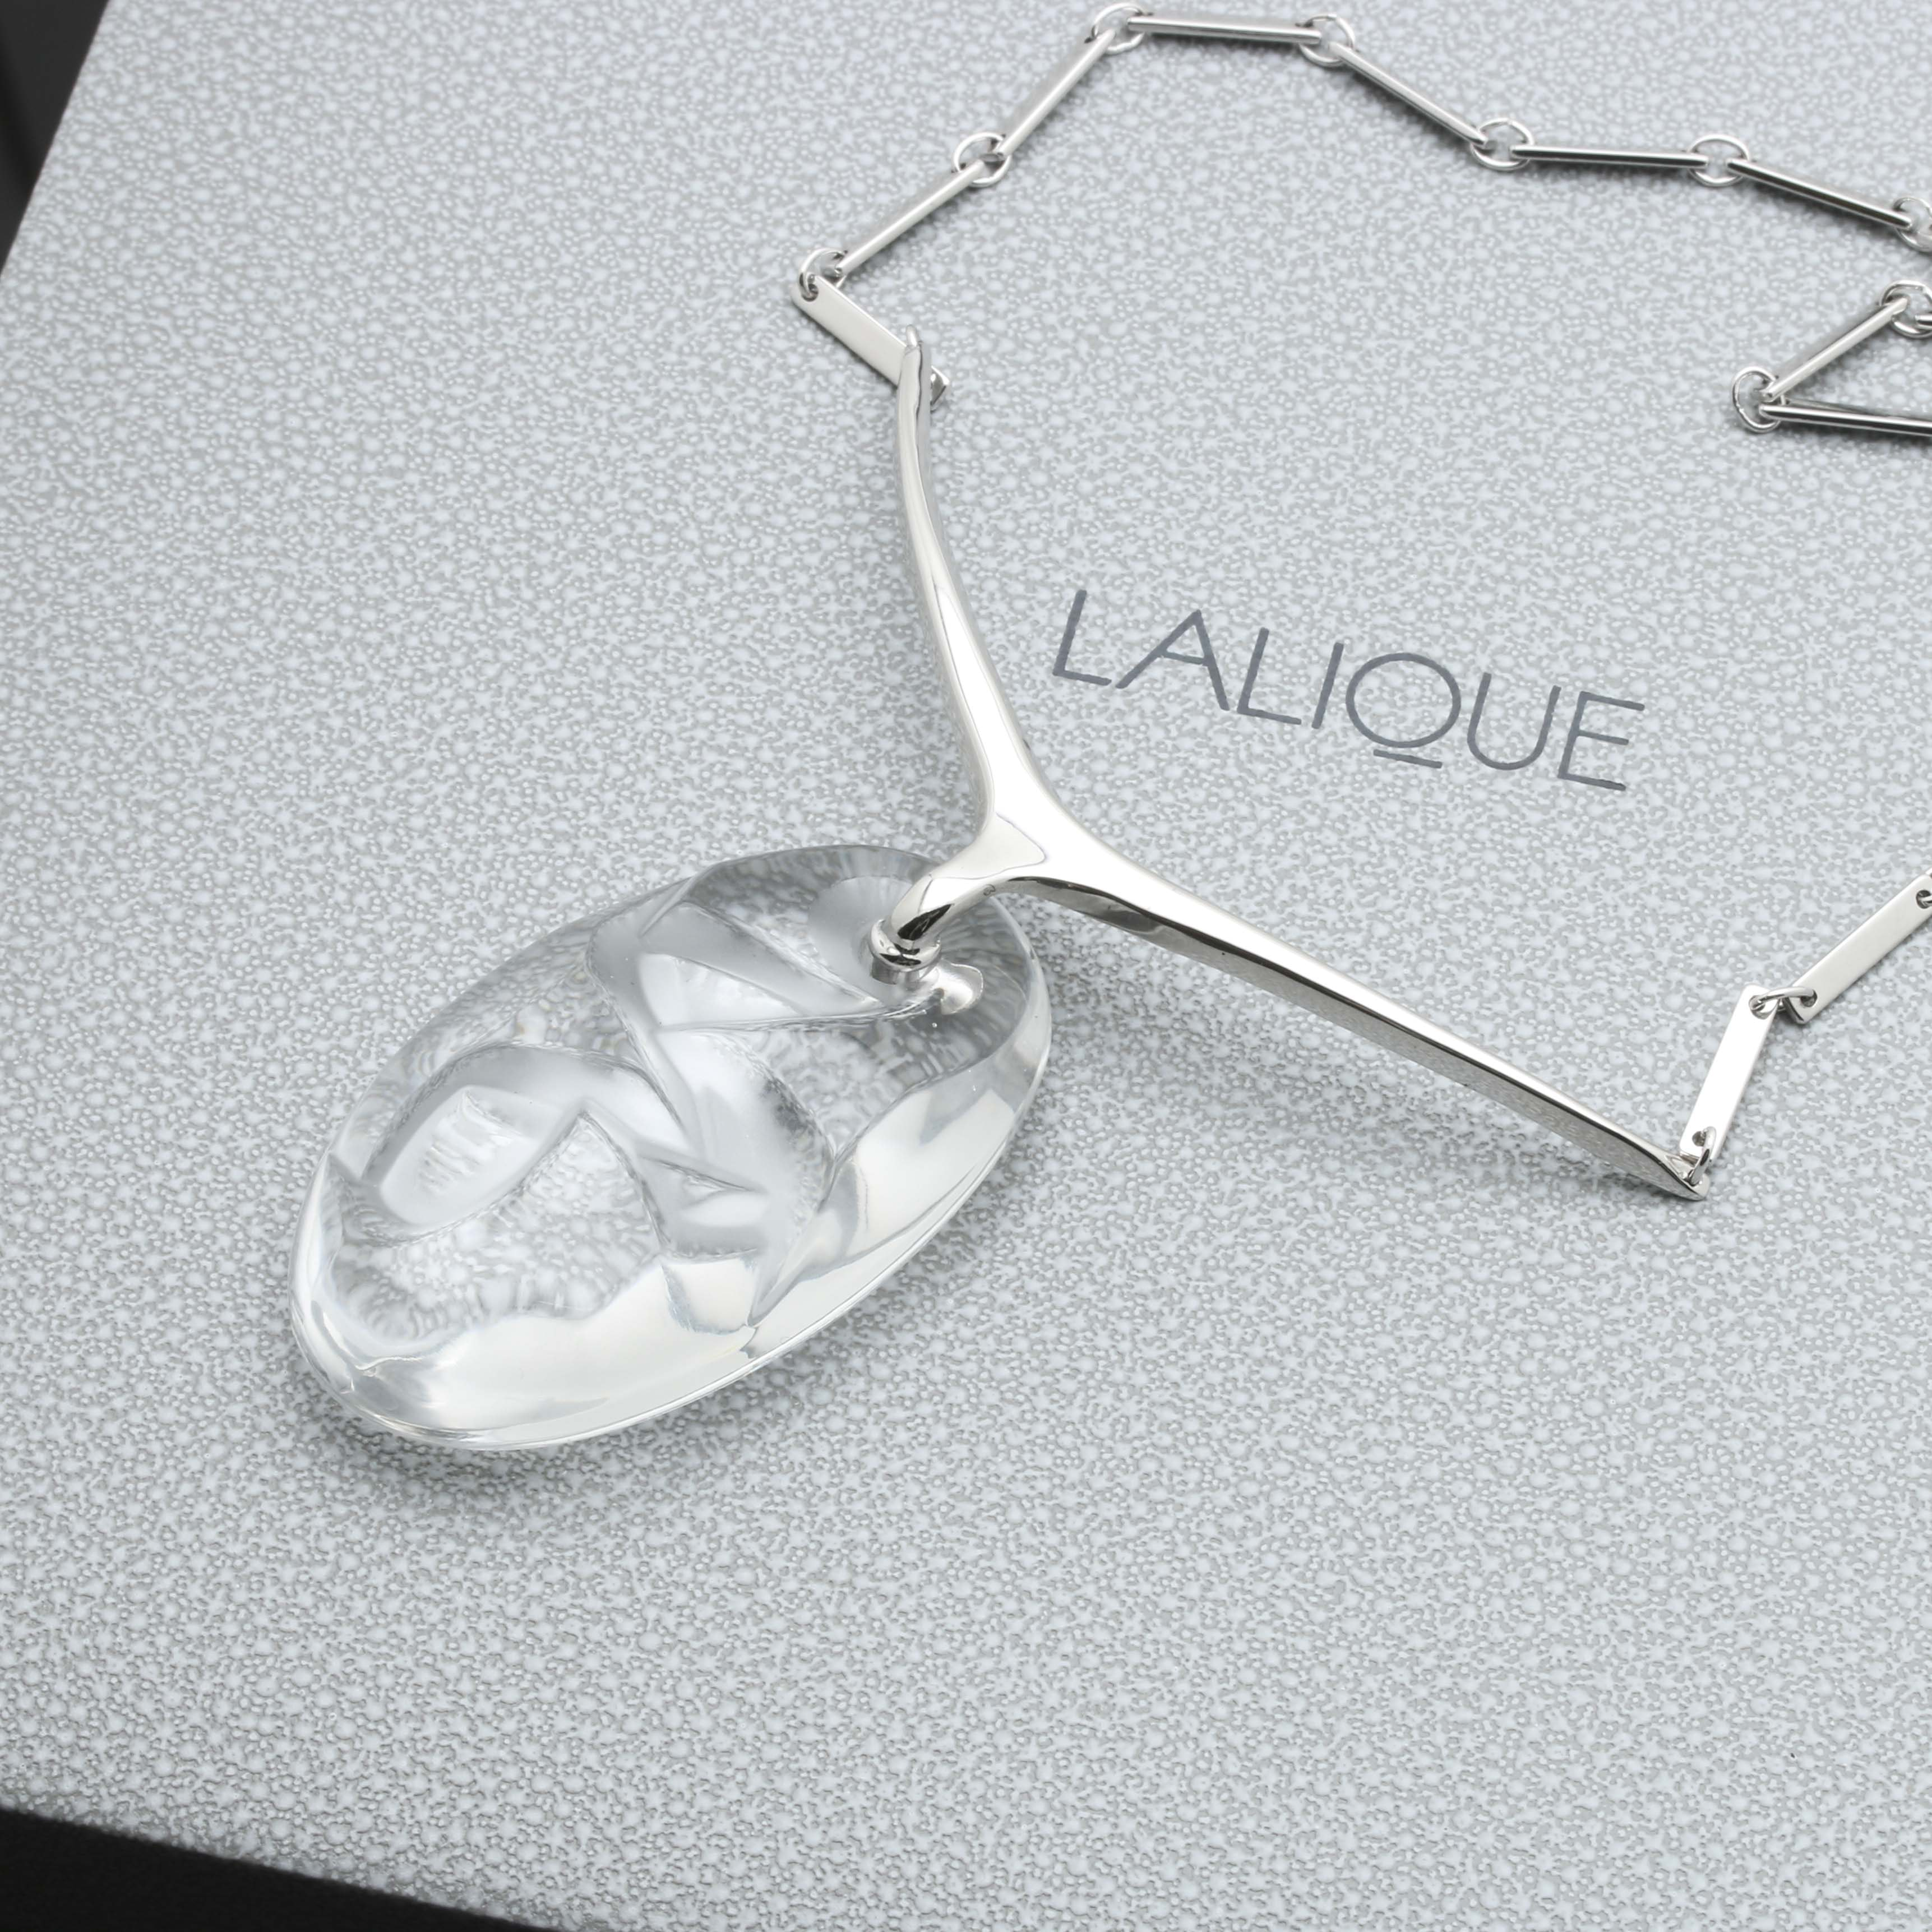 Lalique Sterling Silver Crystal Necklace with Storage Box